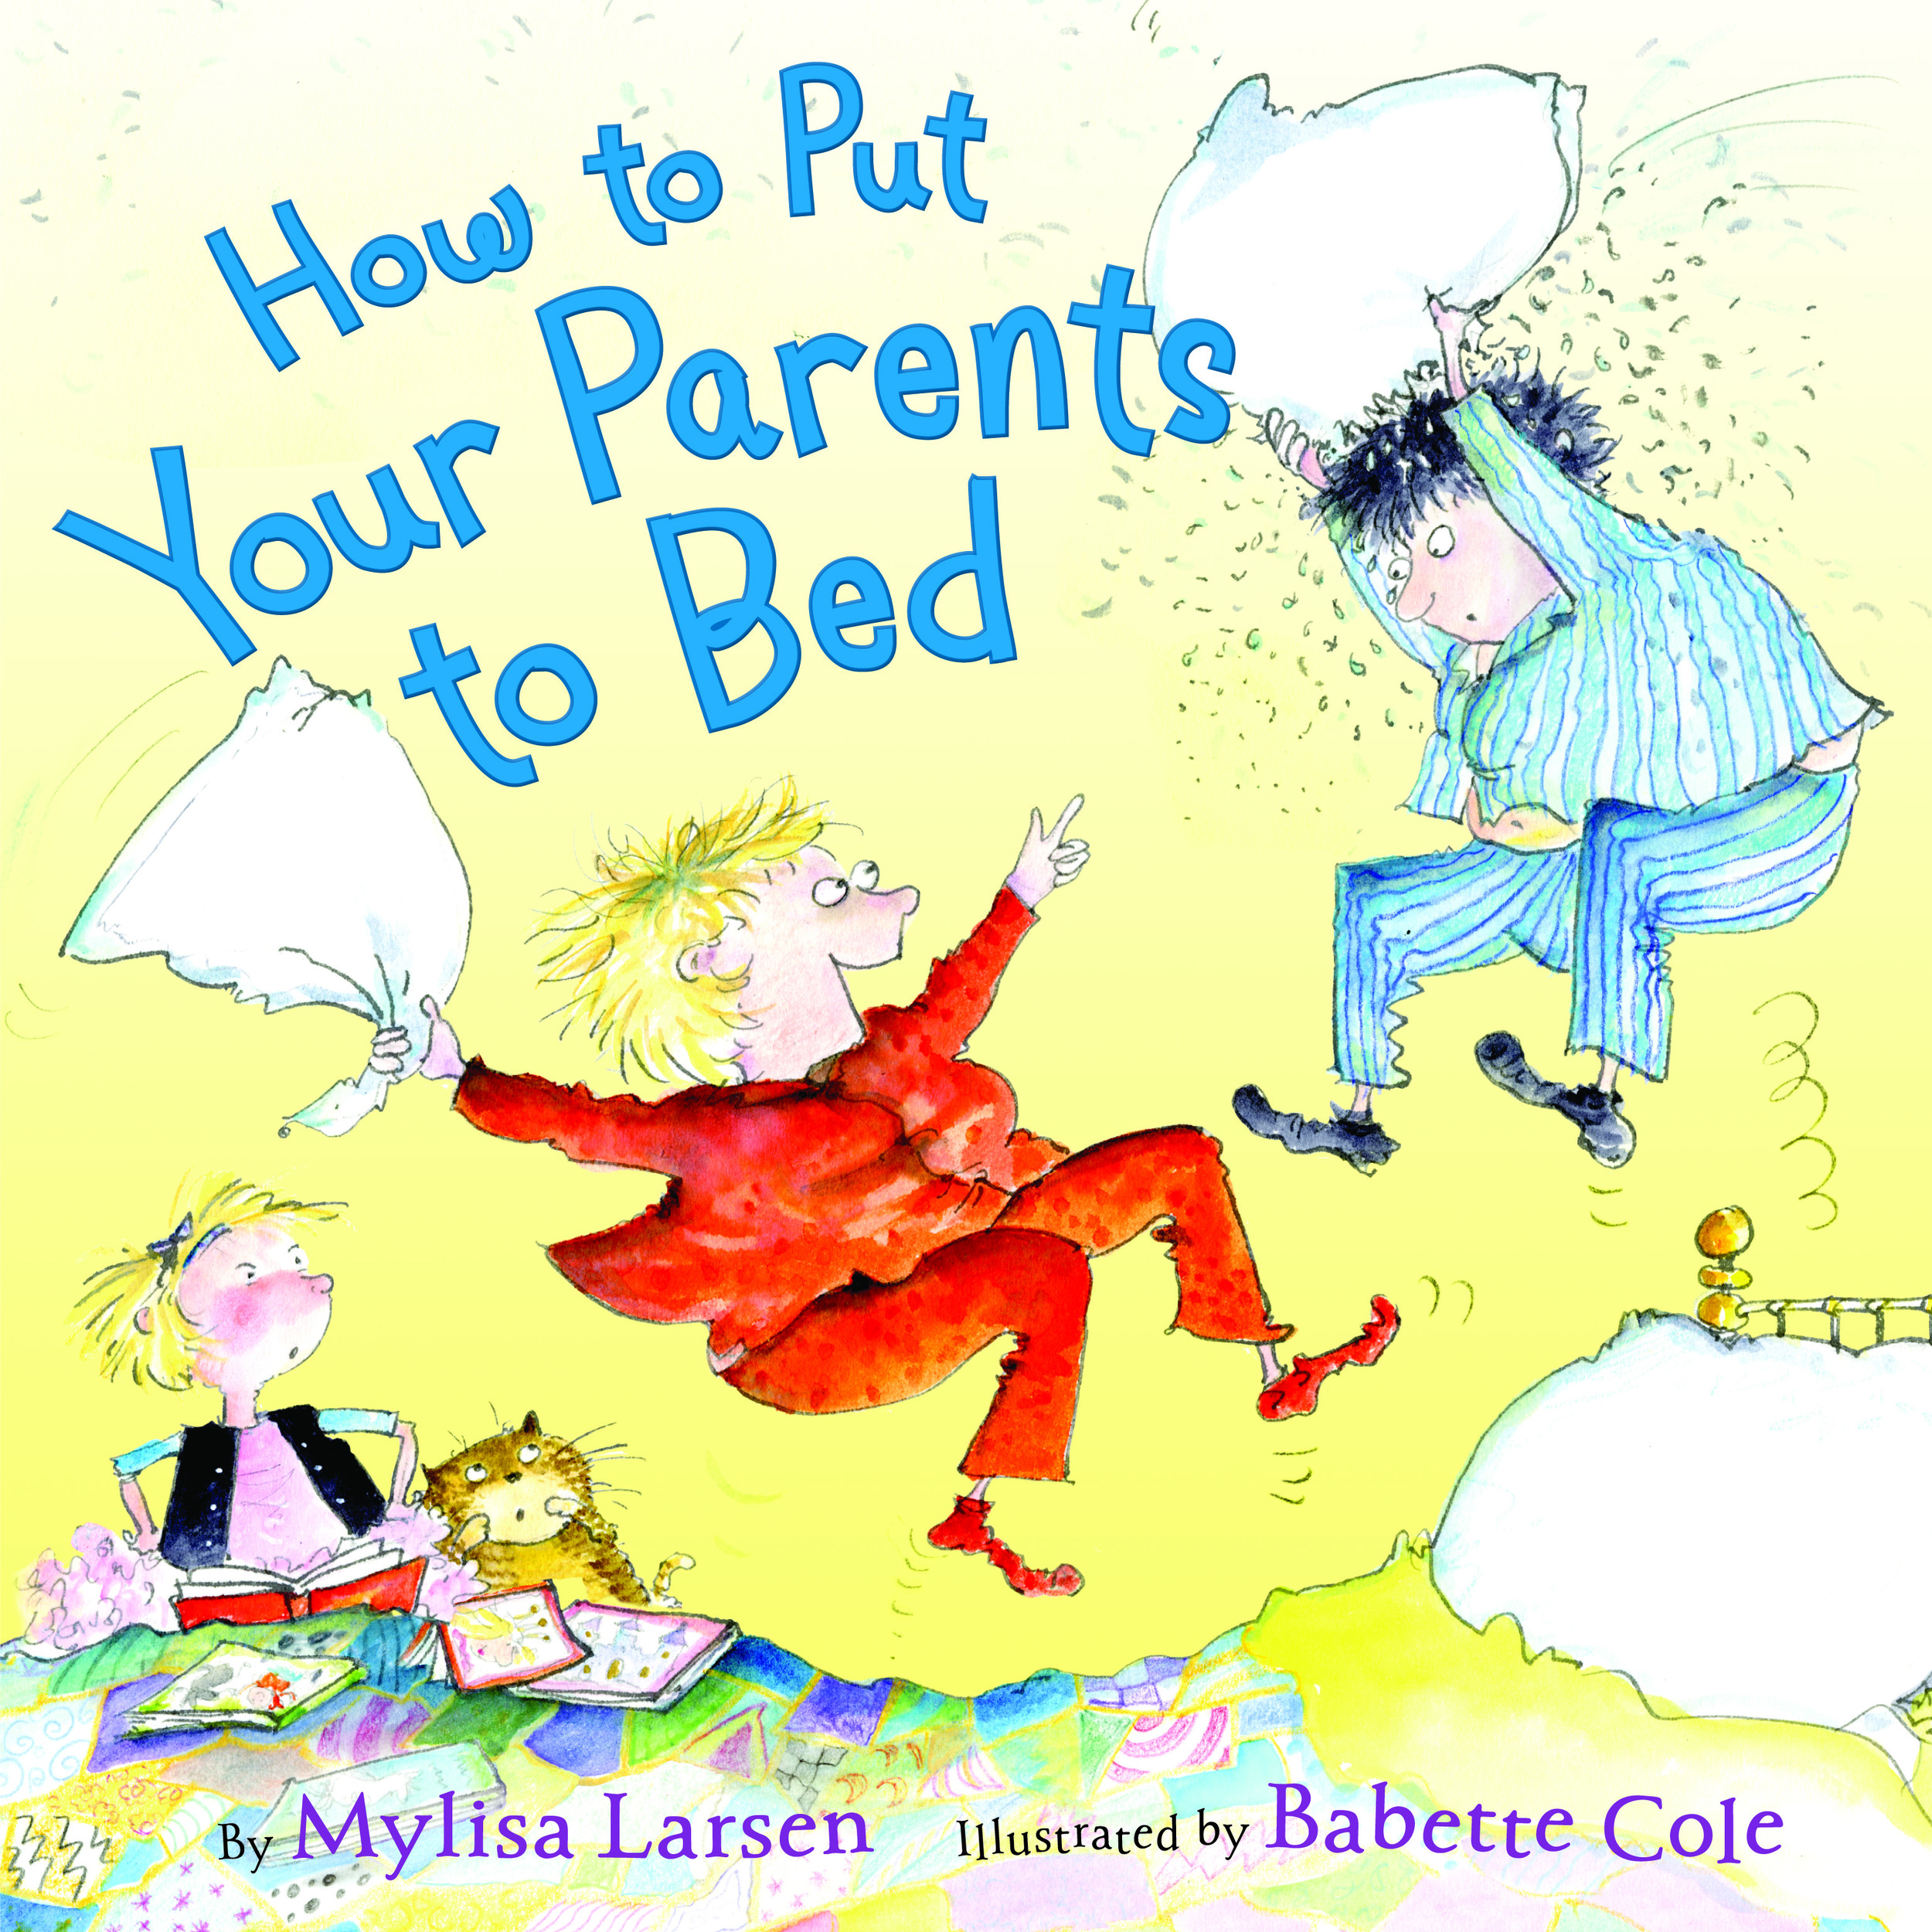 Available for pre-order now and out in the world on February 9. How To Put Your Parents to Bed from Katherine Tegen Books.